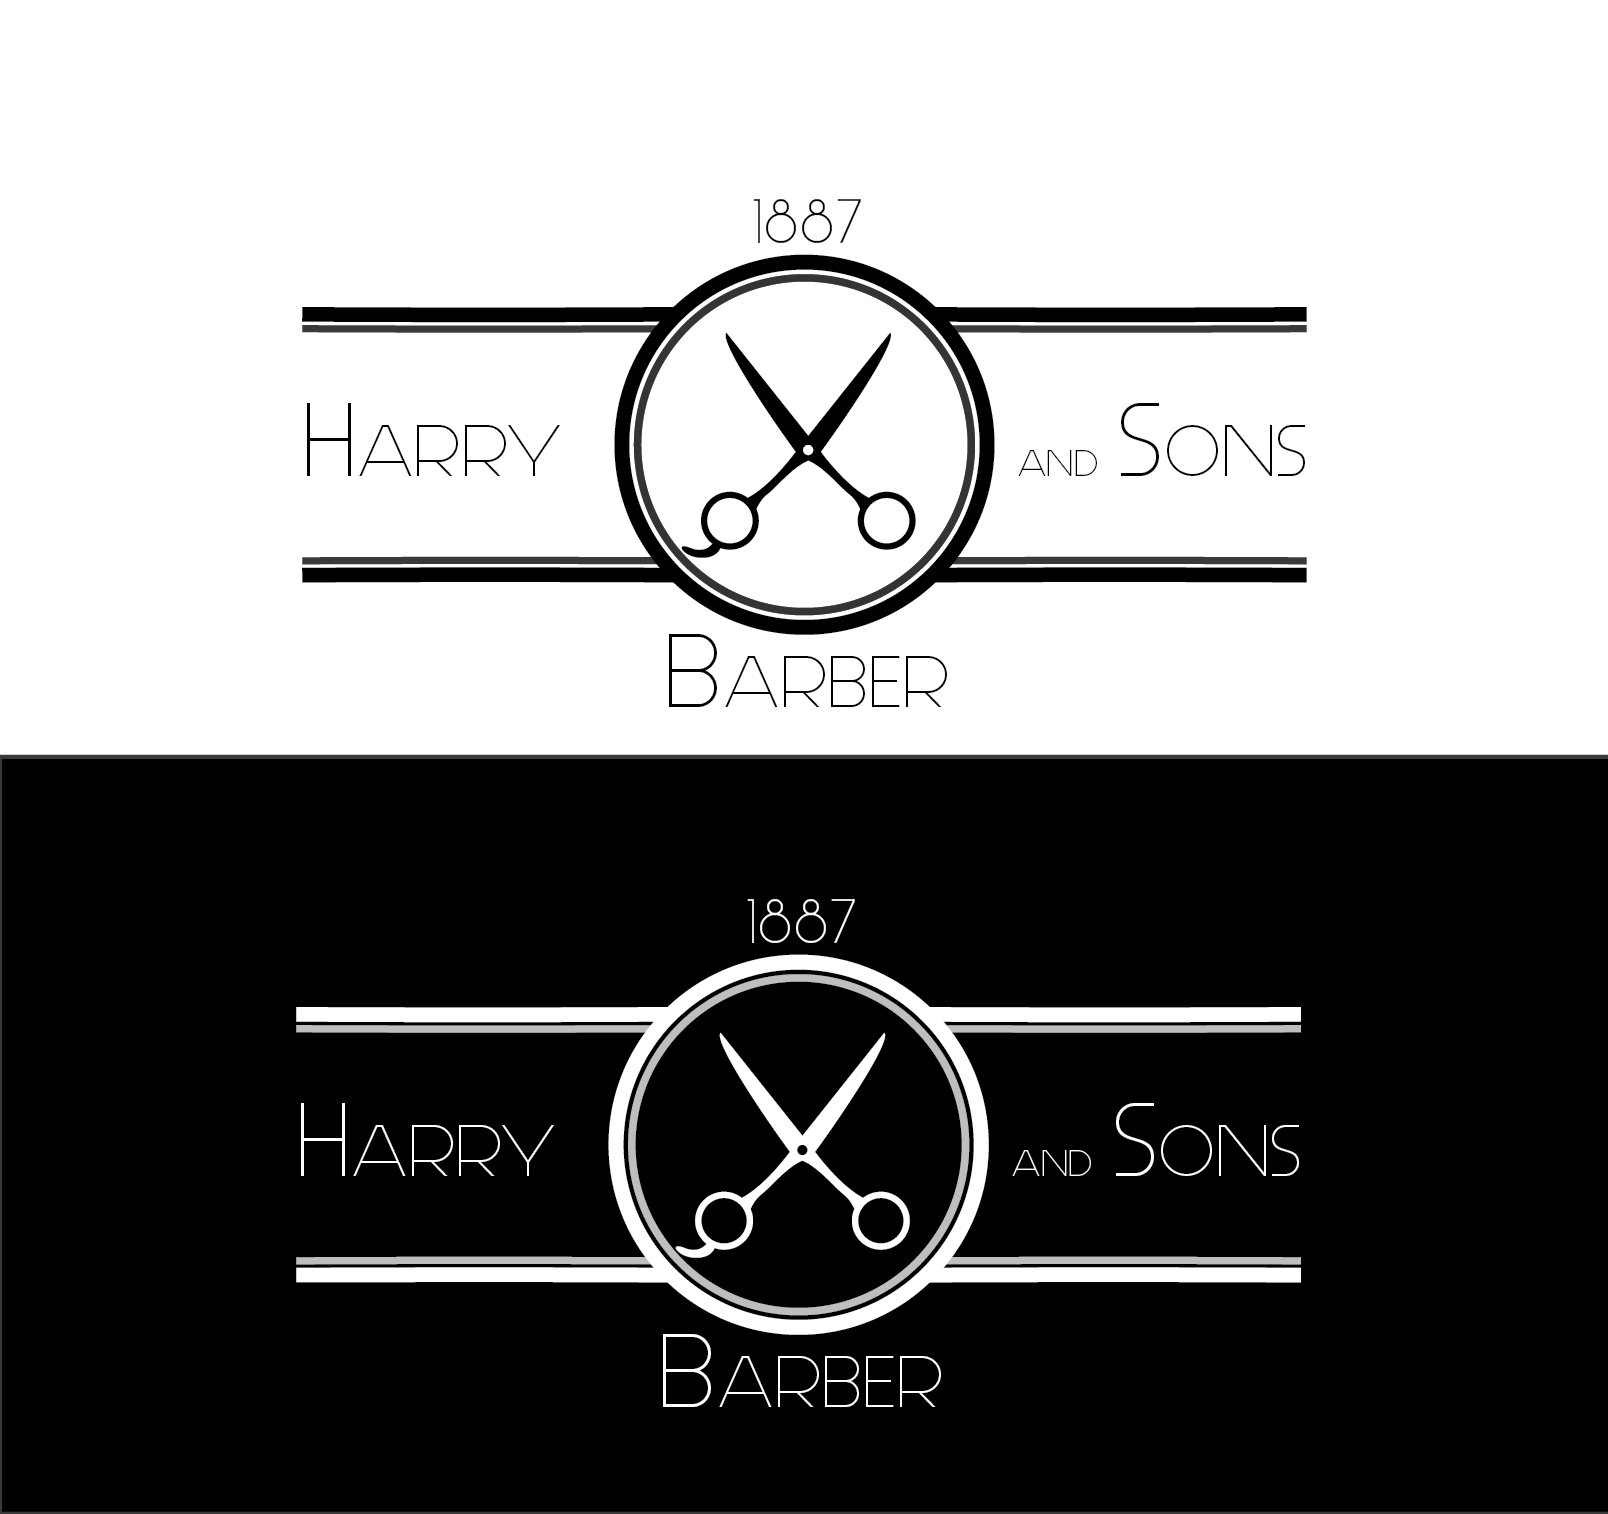 Logo Design by Ahtasham Ahmed - Entry No. 171 in the Logo Design Contest Captivating Logo Design for Harry and Sons Barber.